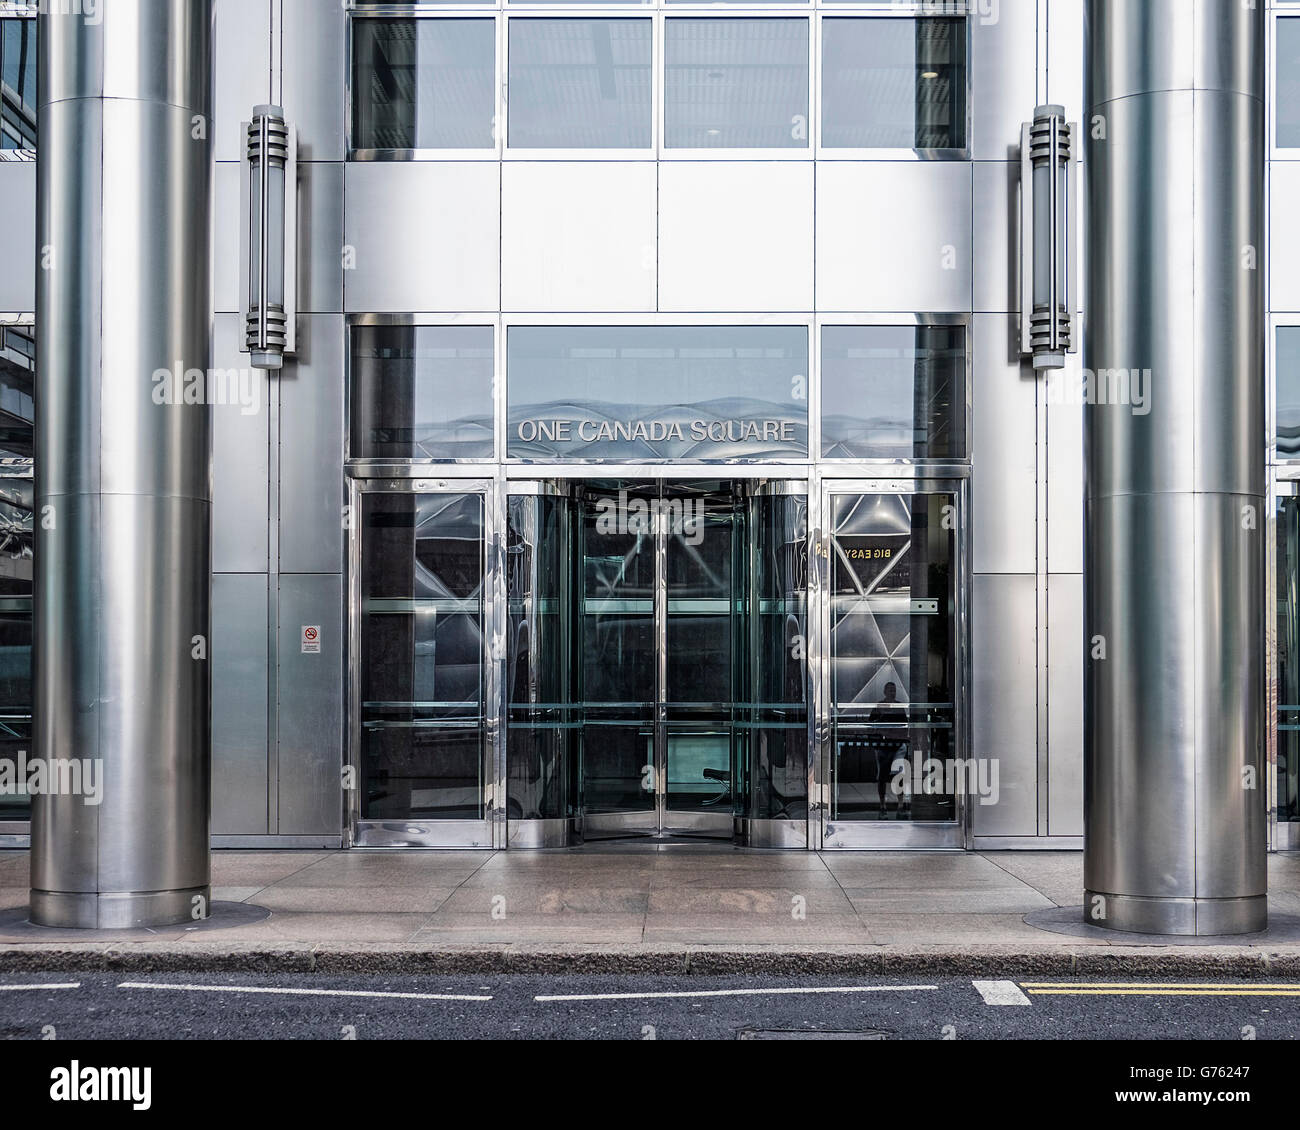 One Canada Square building Entrance, Canary Wharf, London - Stock Image